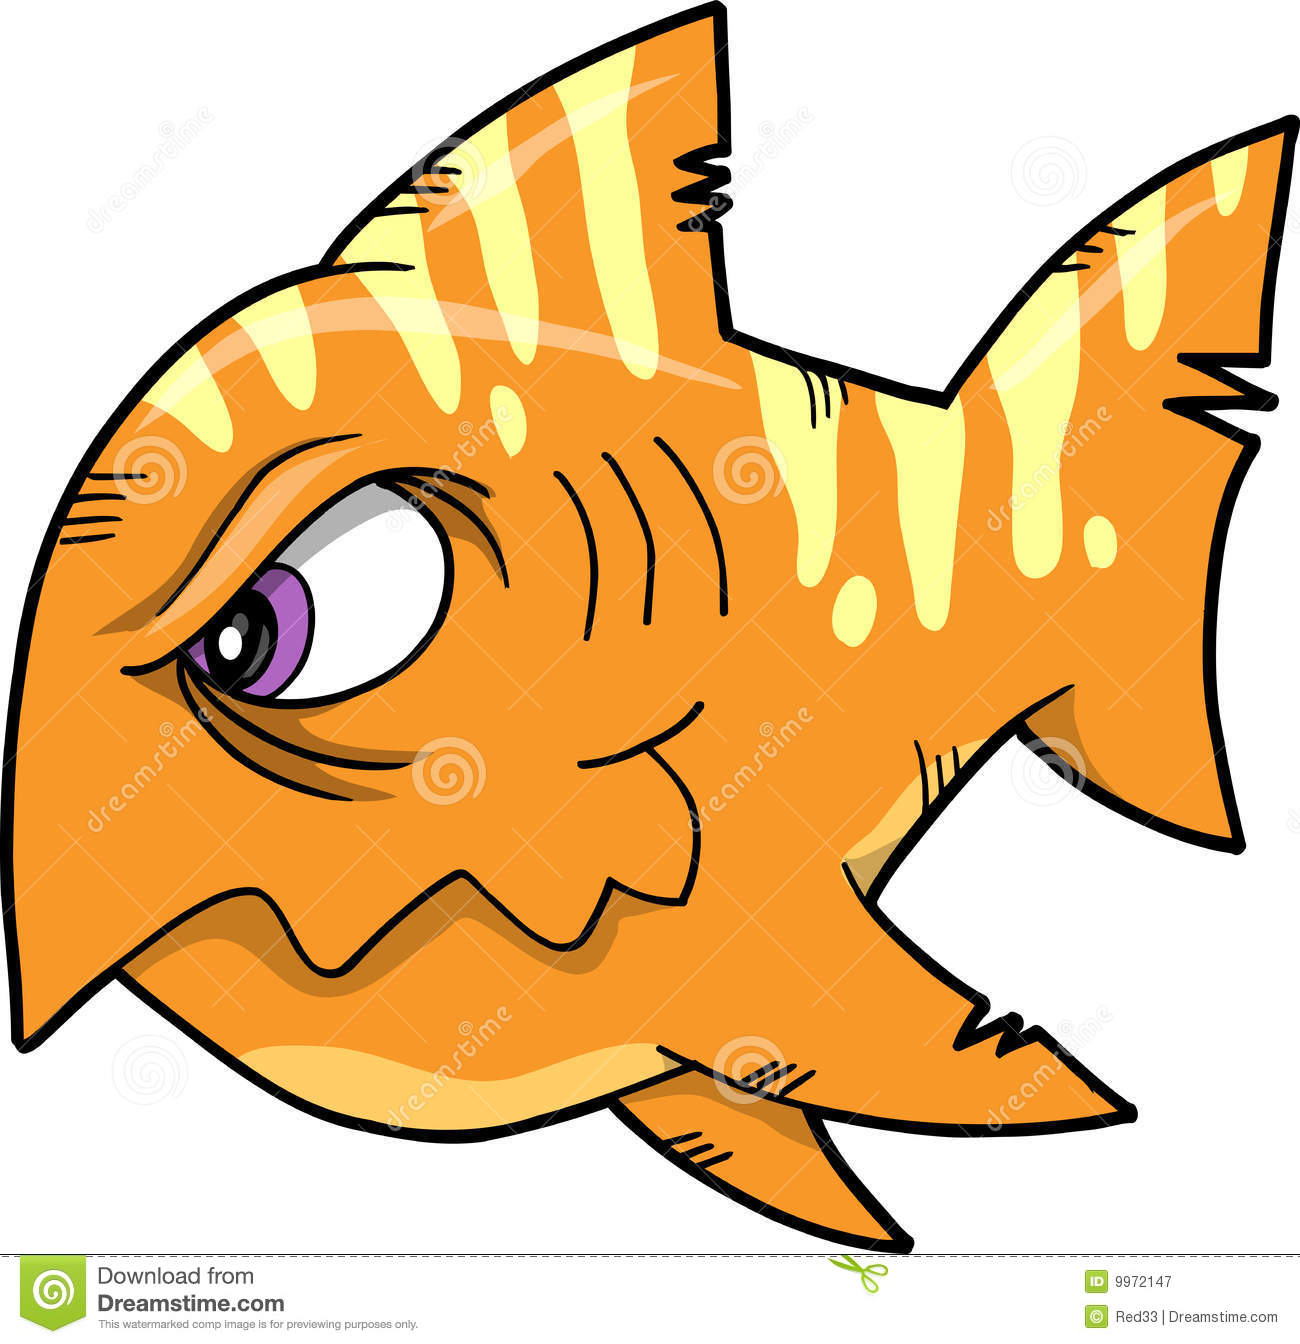 Mean fish vector illustration royalty free stock for What does it mean to dream about fish